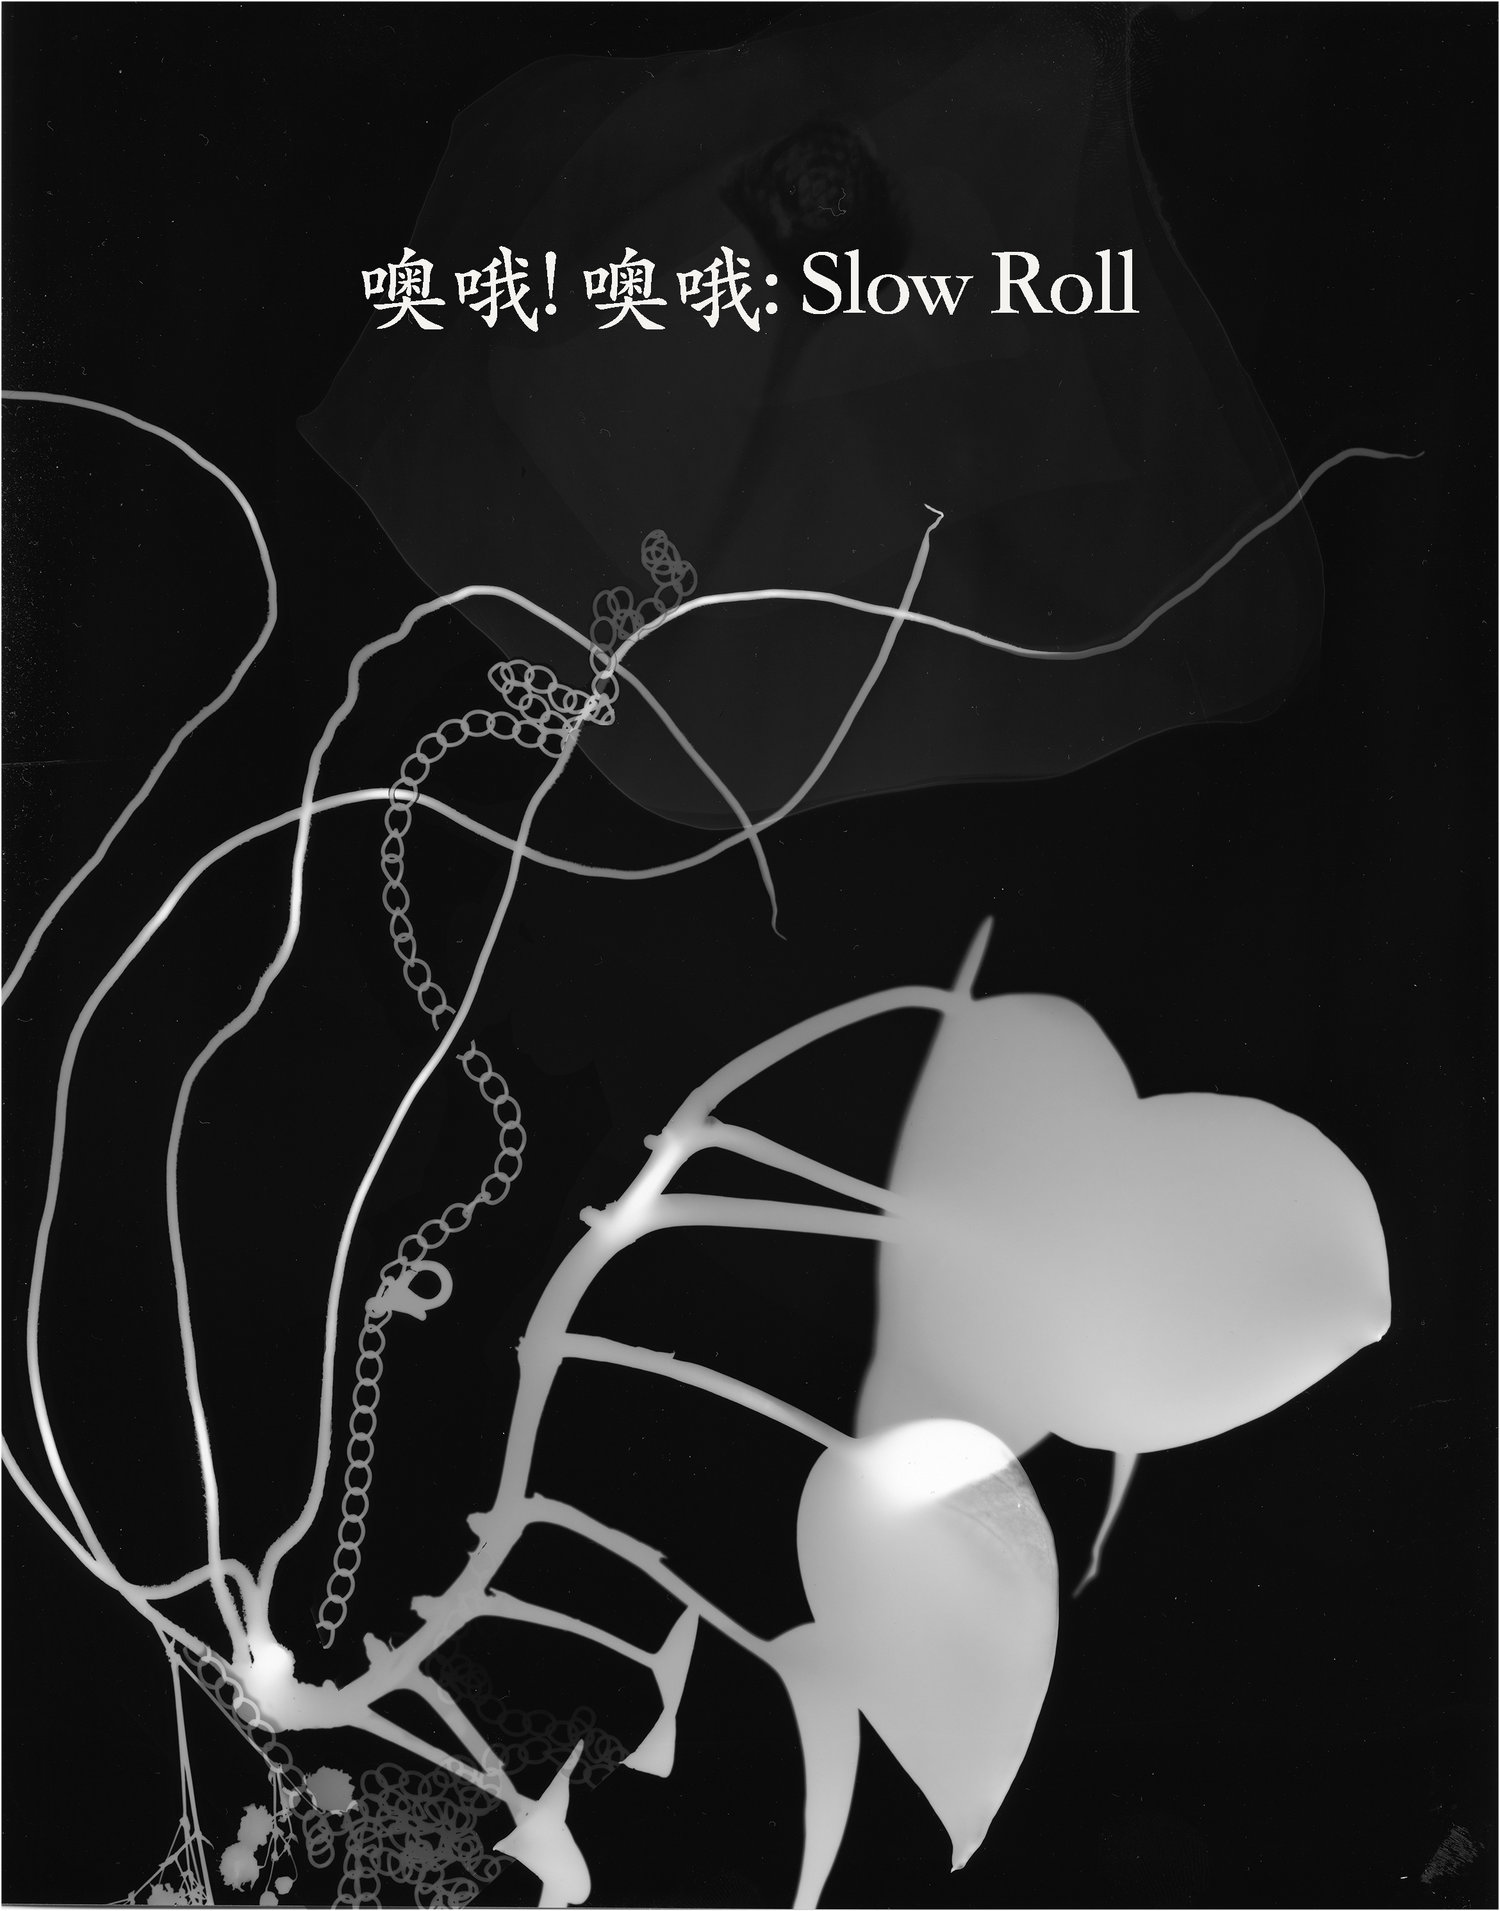 Slow Roll by Salvage Vanguard Theater